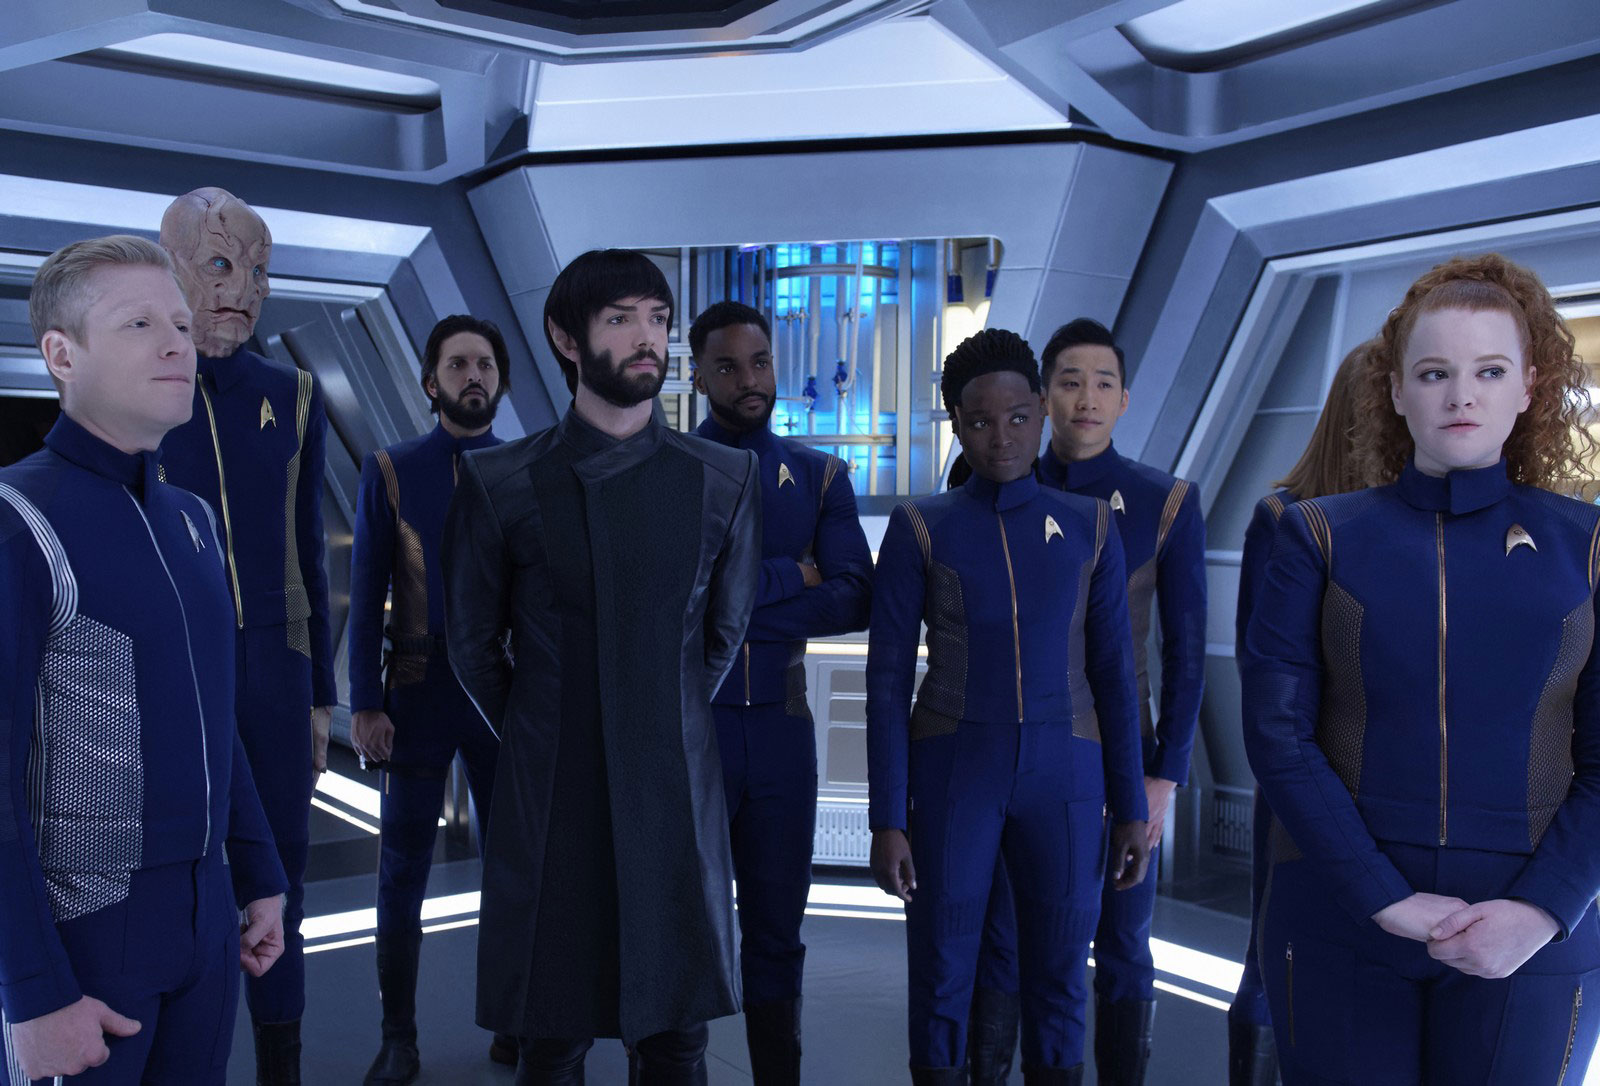 Anthony Rapp as Paul Stamets, Doug Jones as Saru, Shazad Latif as Ash Tyler, Ethan Peck as Spock, Ronnie Rowe as R.A. Bryce, Oyin Oladejo as Joann Owosekun, Patrick Kwok-Choon as Gen Rhys and Mary Wiseman as Sylvia Tilly